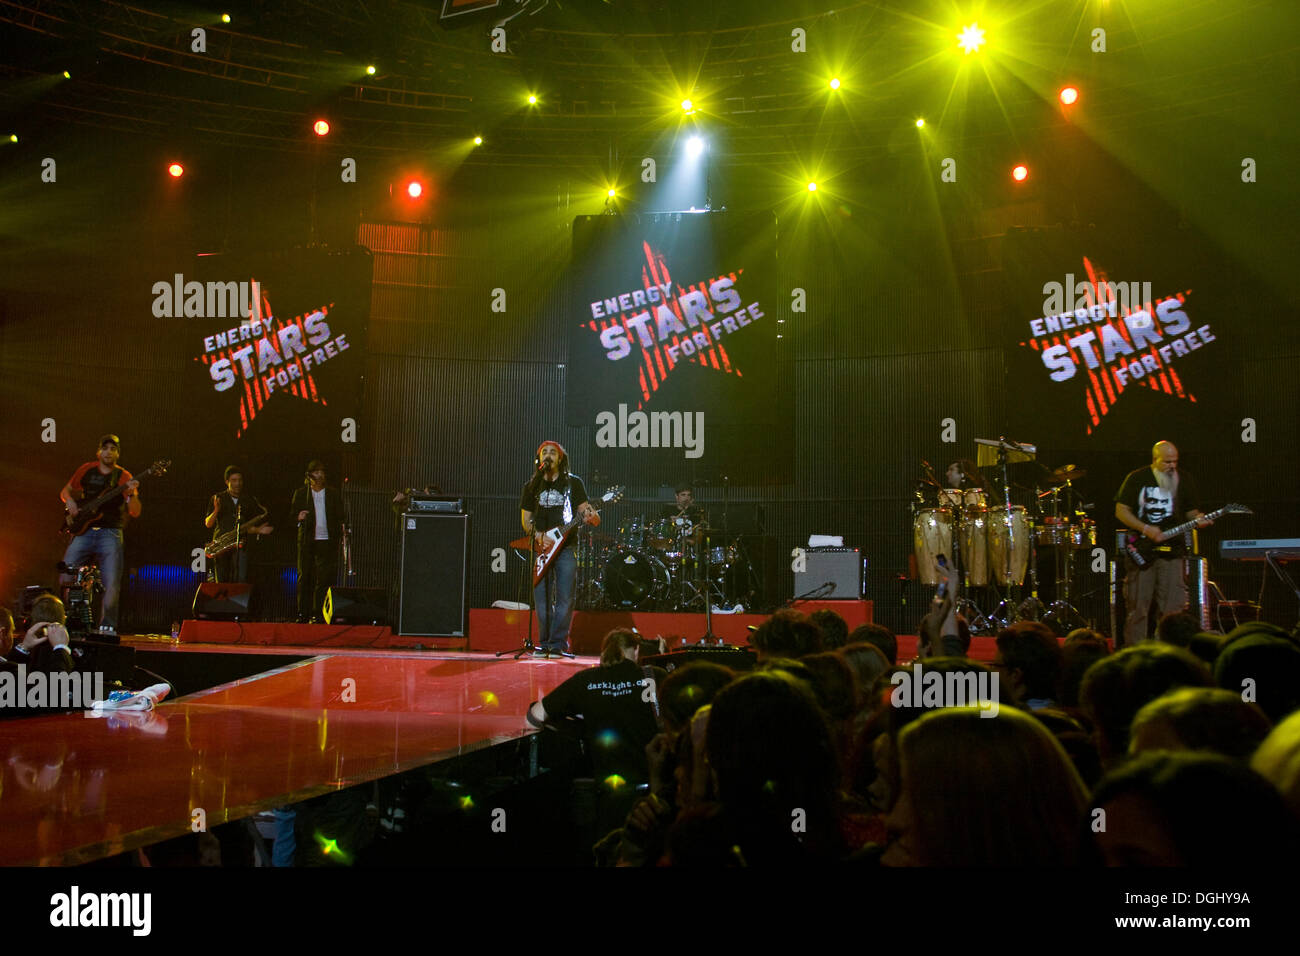 Latin Singers Stock Photos & Latin Singers Stock Images - Alamy